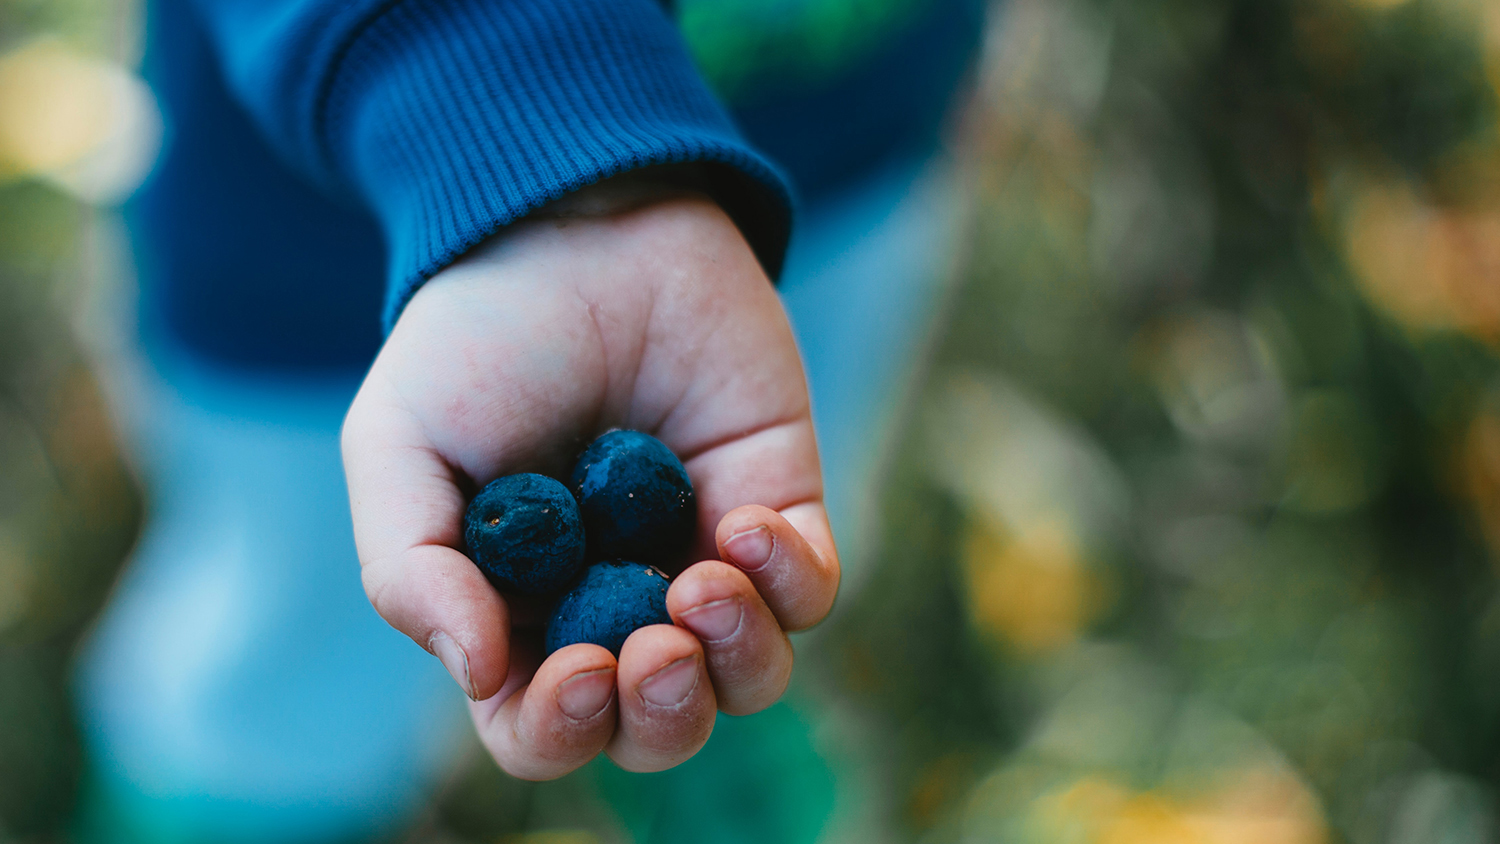 Child's outstretched hand with blueberries